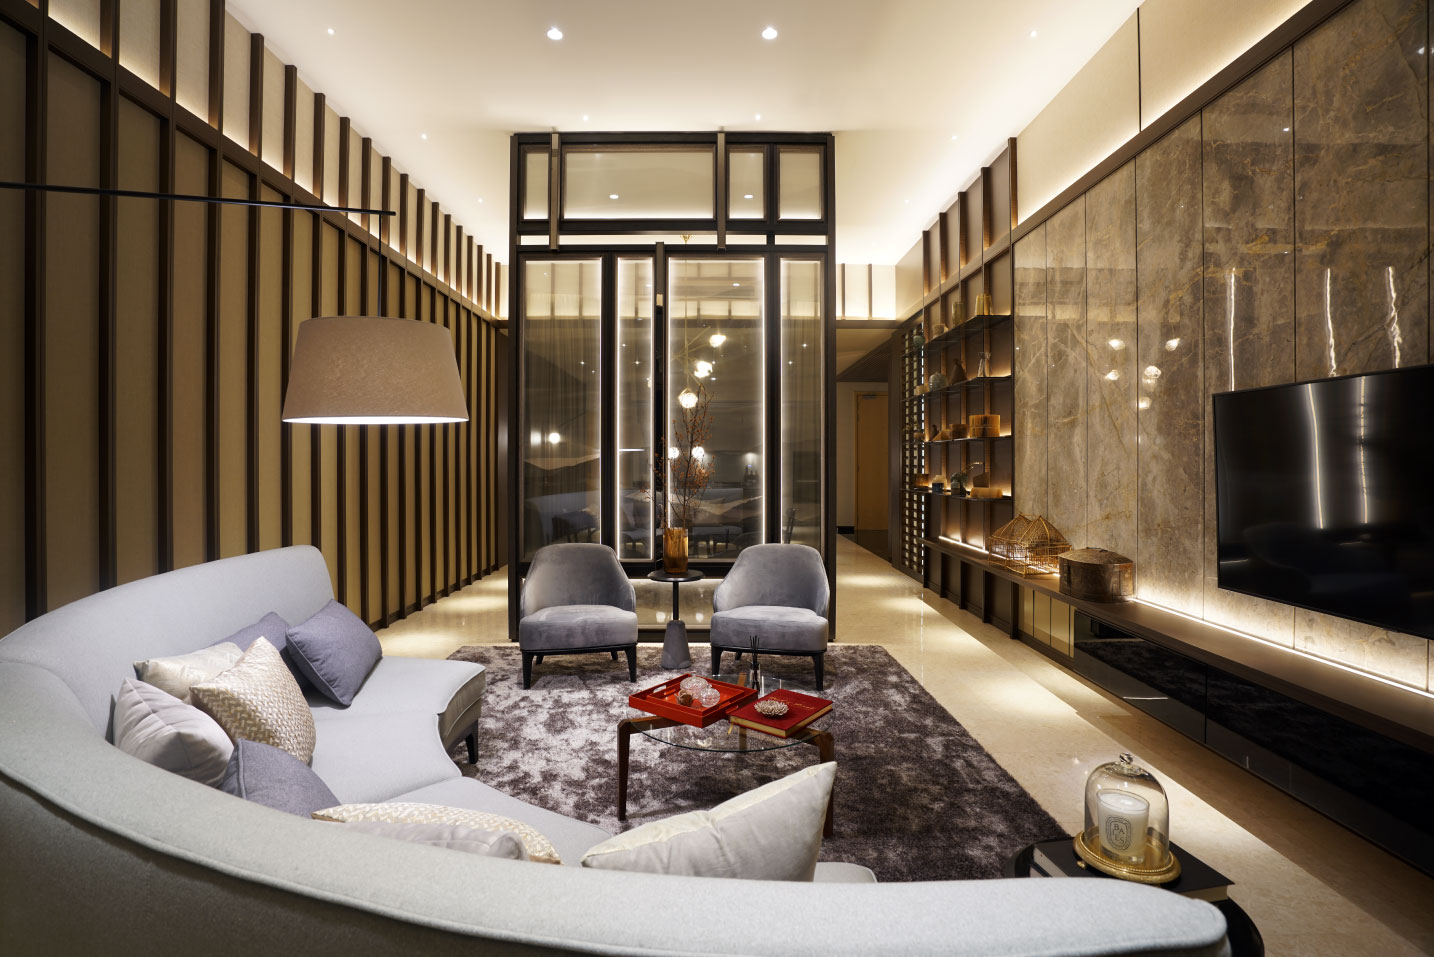 GuocoLand Malaysia Launches DC Residensi Luxury Living Campaign in Collaboration with Ingress Auto